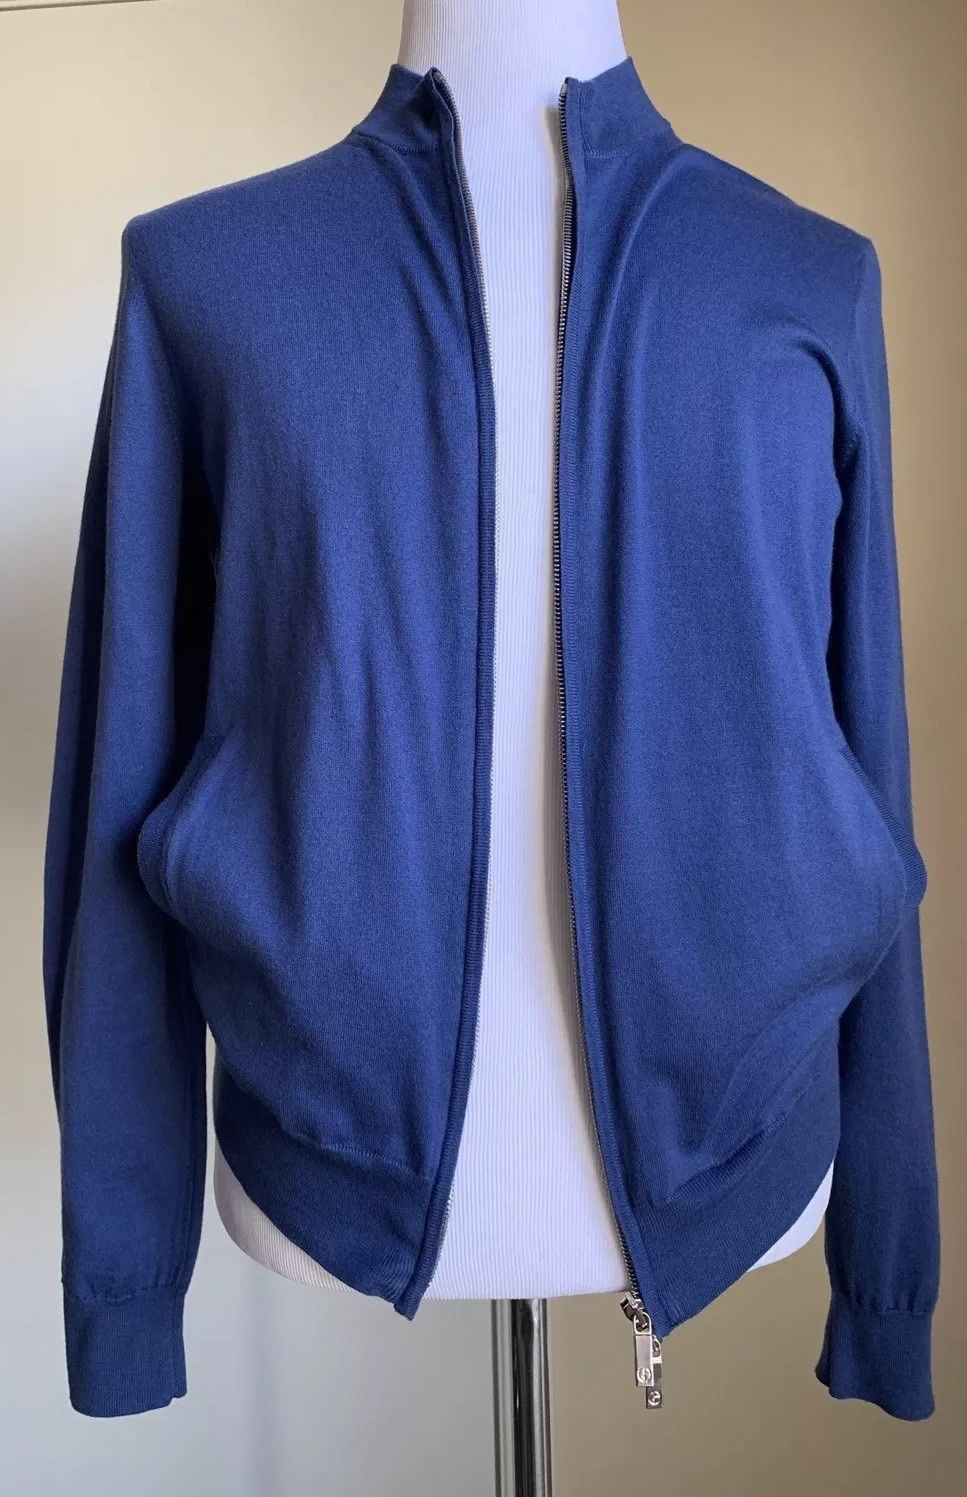 New $1695 Giorgio Armani Mens Full Zip Jacket Sweater Blue M US ( 50 Eu ) Italy